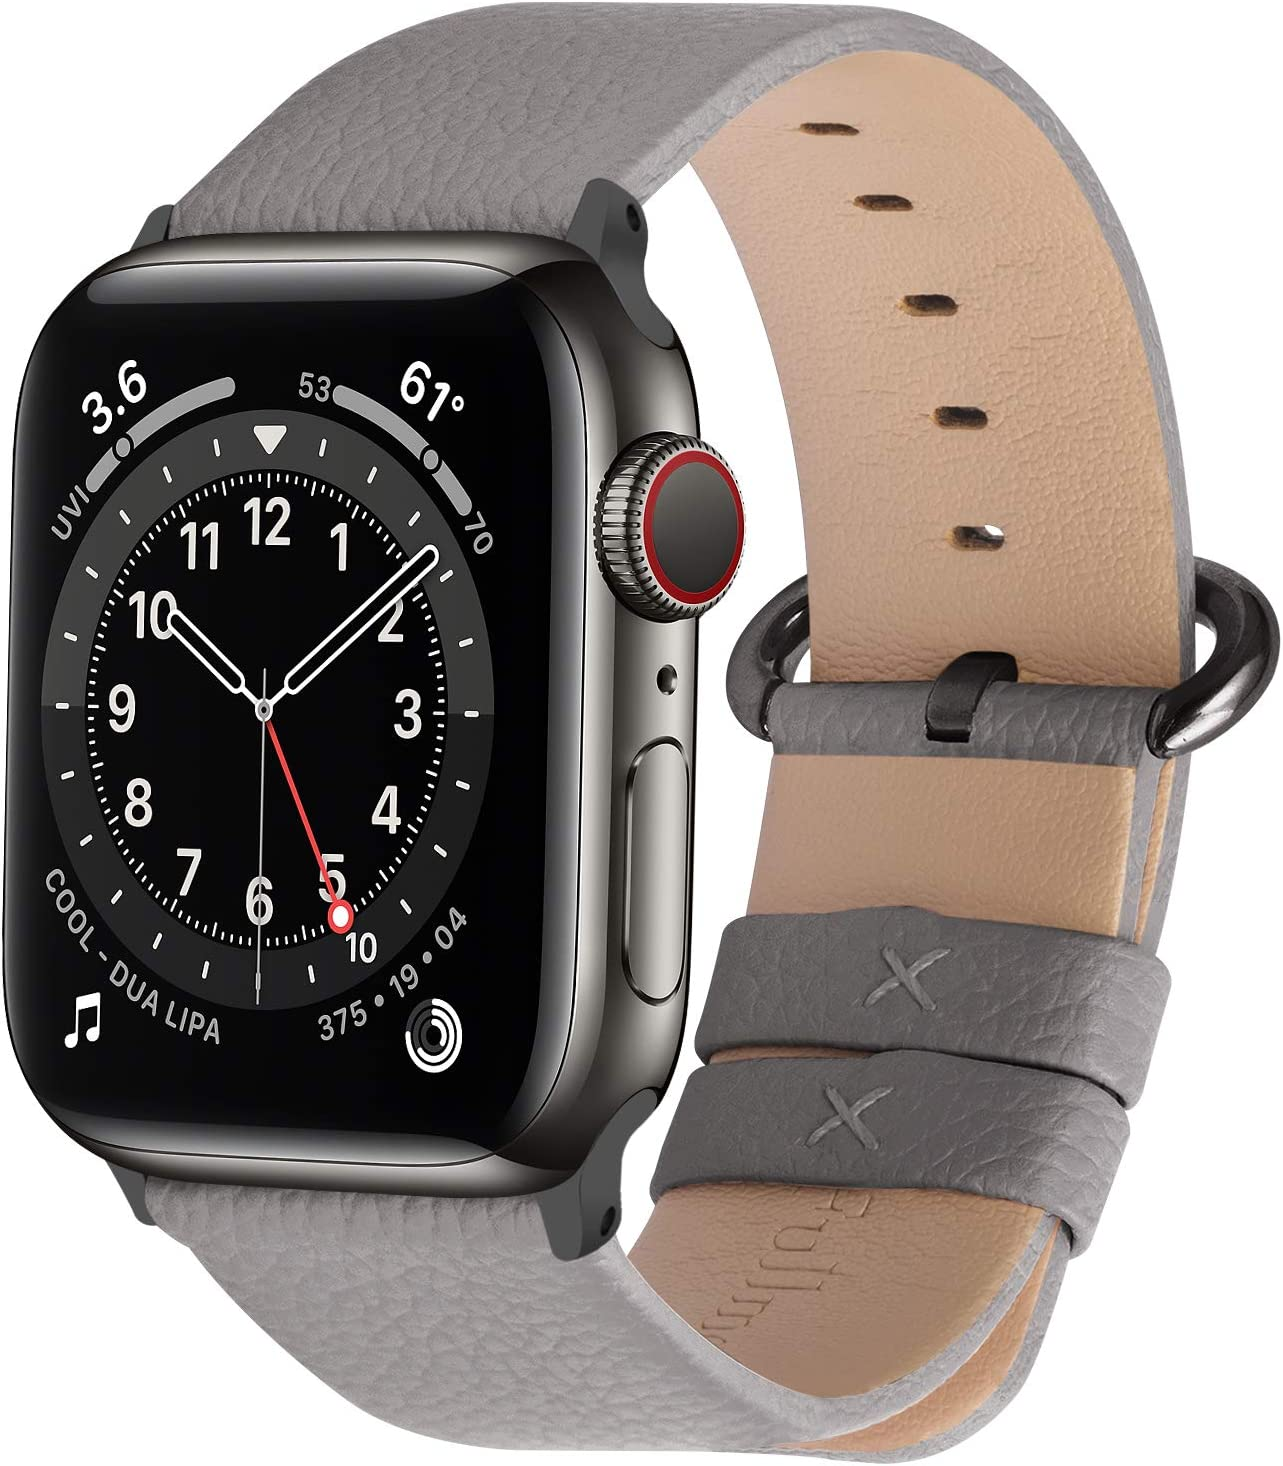 Fullmosa Compatible Apple Watch Band 38mm 40mm 42mm 44mm Leather Compatible iWatch Band/Strap Compatible Apple Watch SE & Series 6 5 4 3 2 1, 38mm 40mm Grey + Smoky Grey Buckle